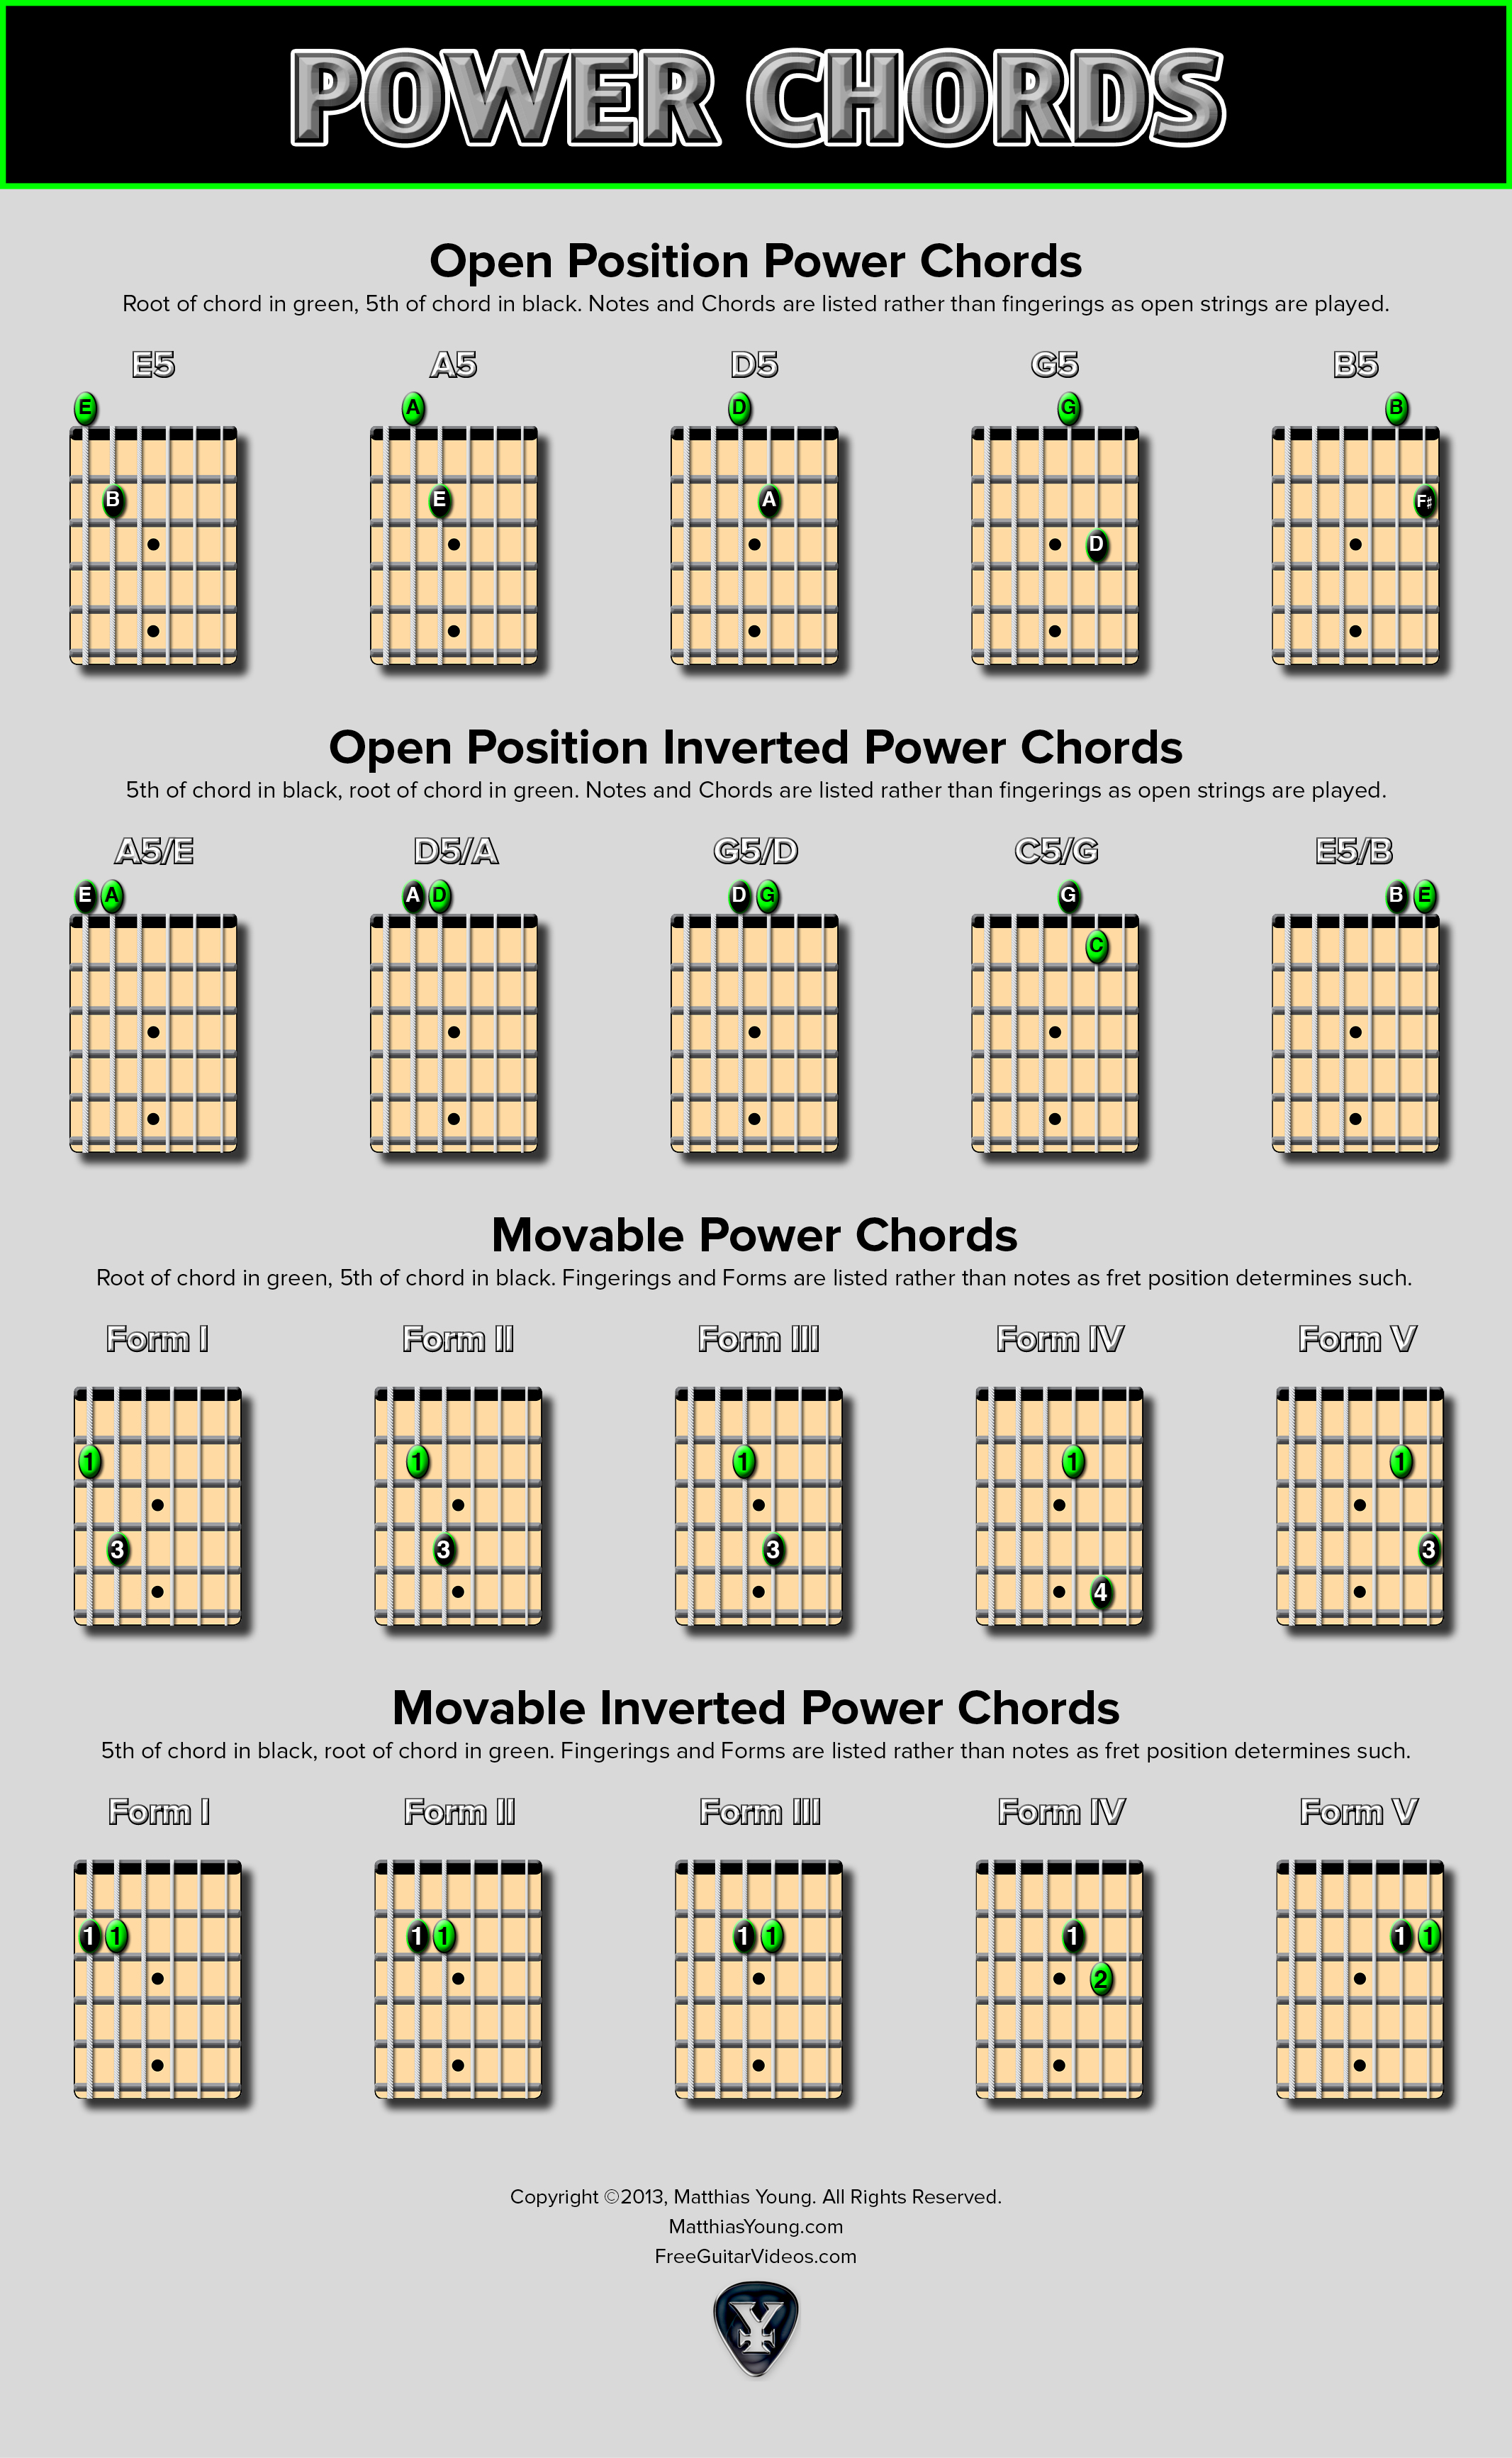 Your name guitar chords